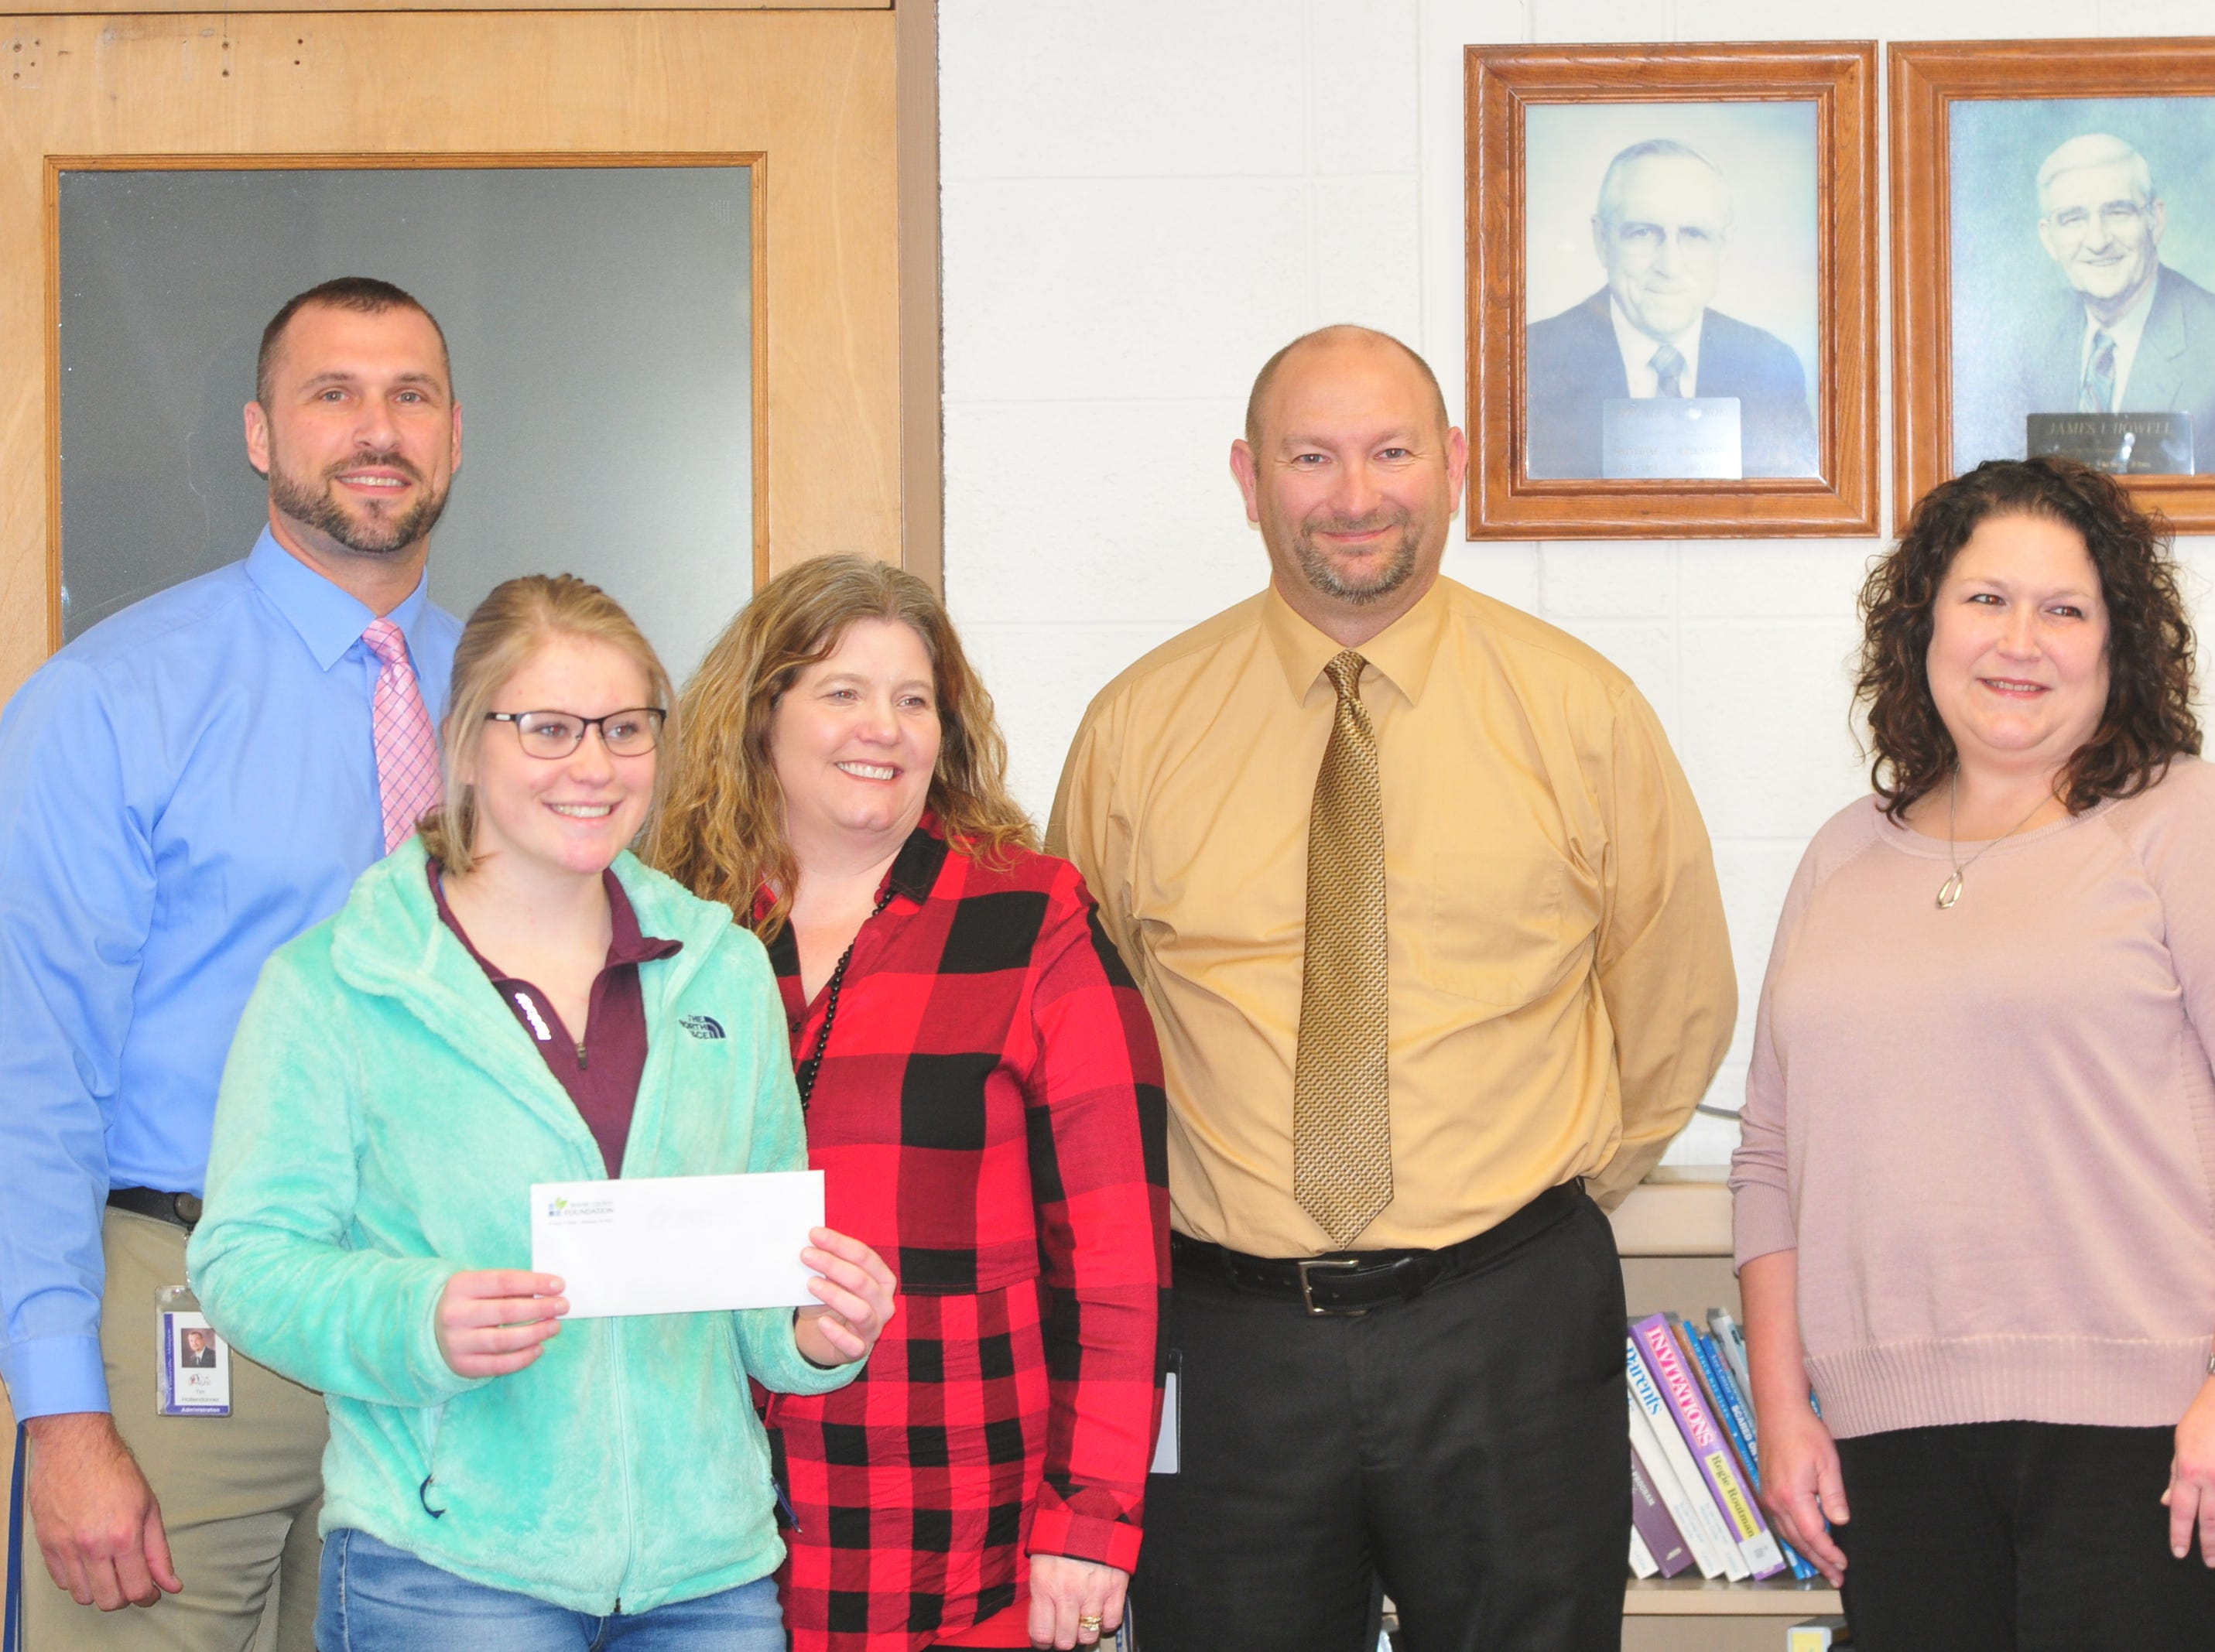 Centerville High School senior Molly Coomes, second from left, with assistant principal Tim Hollendonner, mother Renee Westover, principal Mike McCoy and Wayne County Foundation Program Officer Lisa Bates after learning that Coomes is a recipient of the Wayne County Foundation's Lily Endowment Community Scholarship at Centerville High School Tuesday, Dec. 11, 2018.